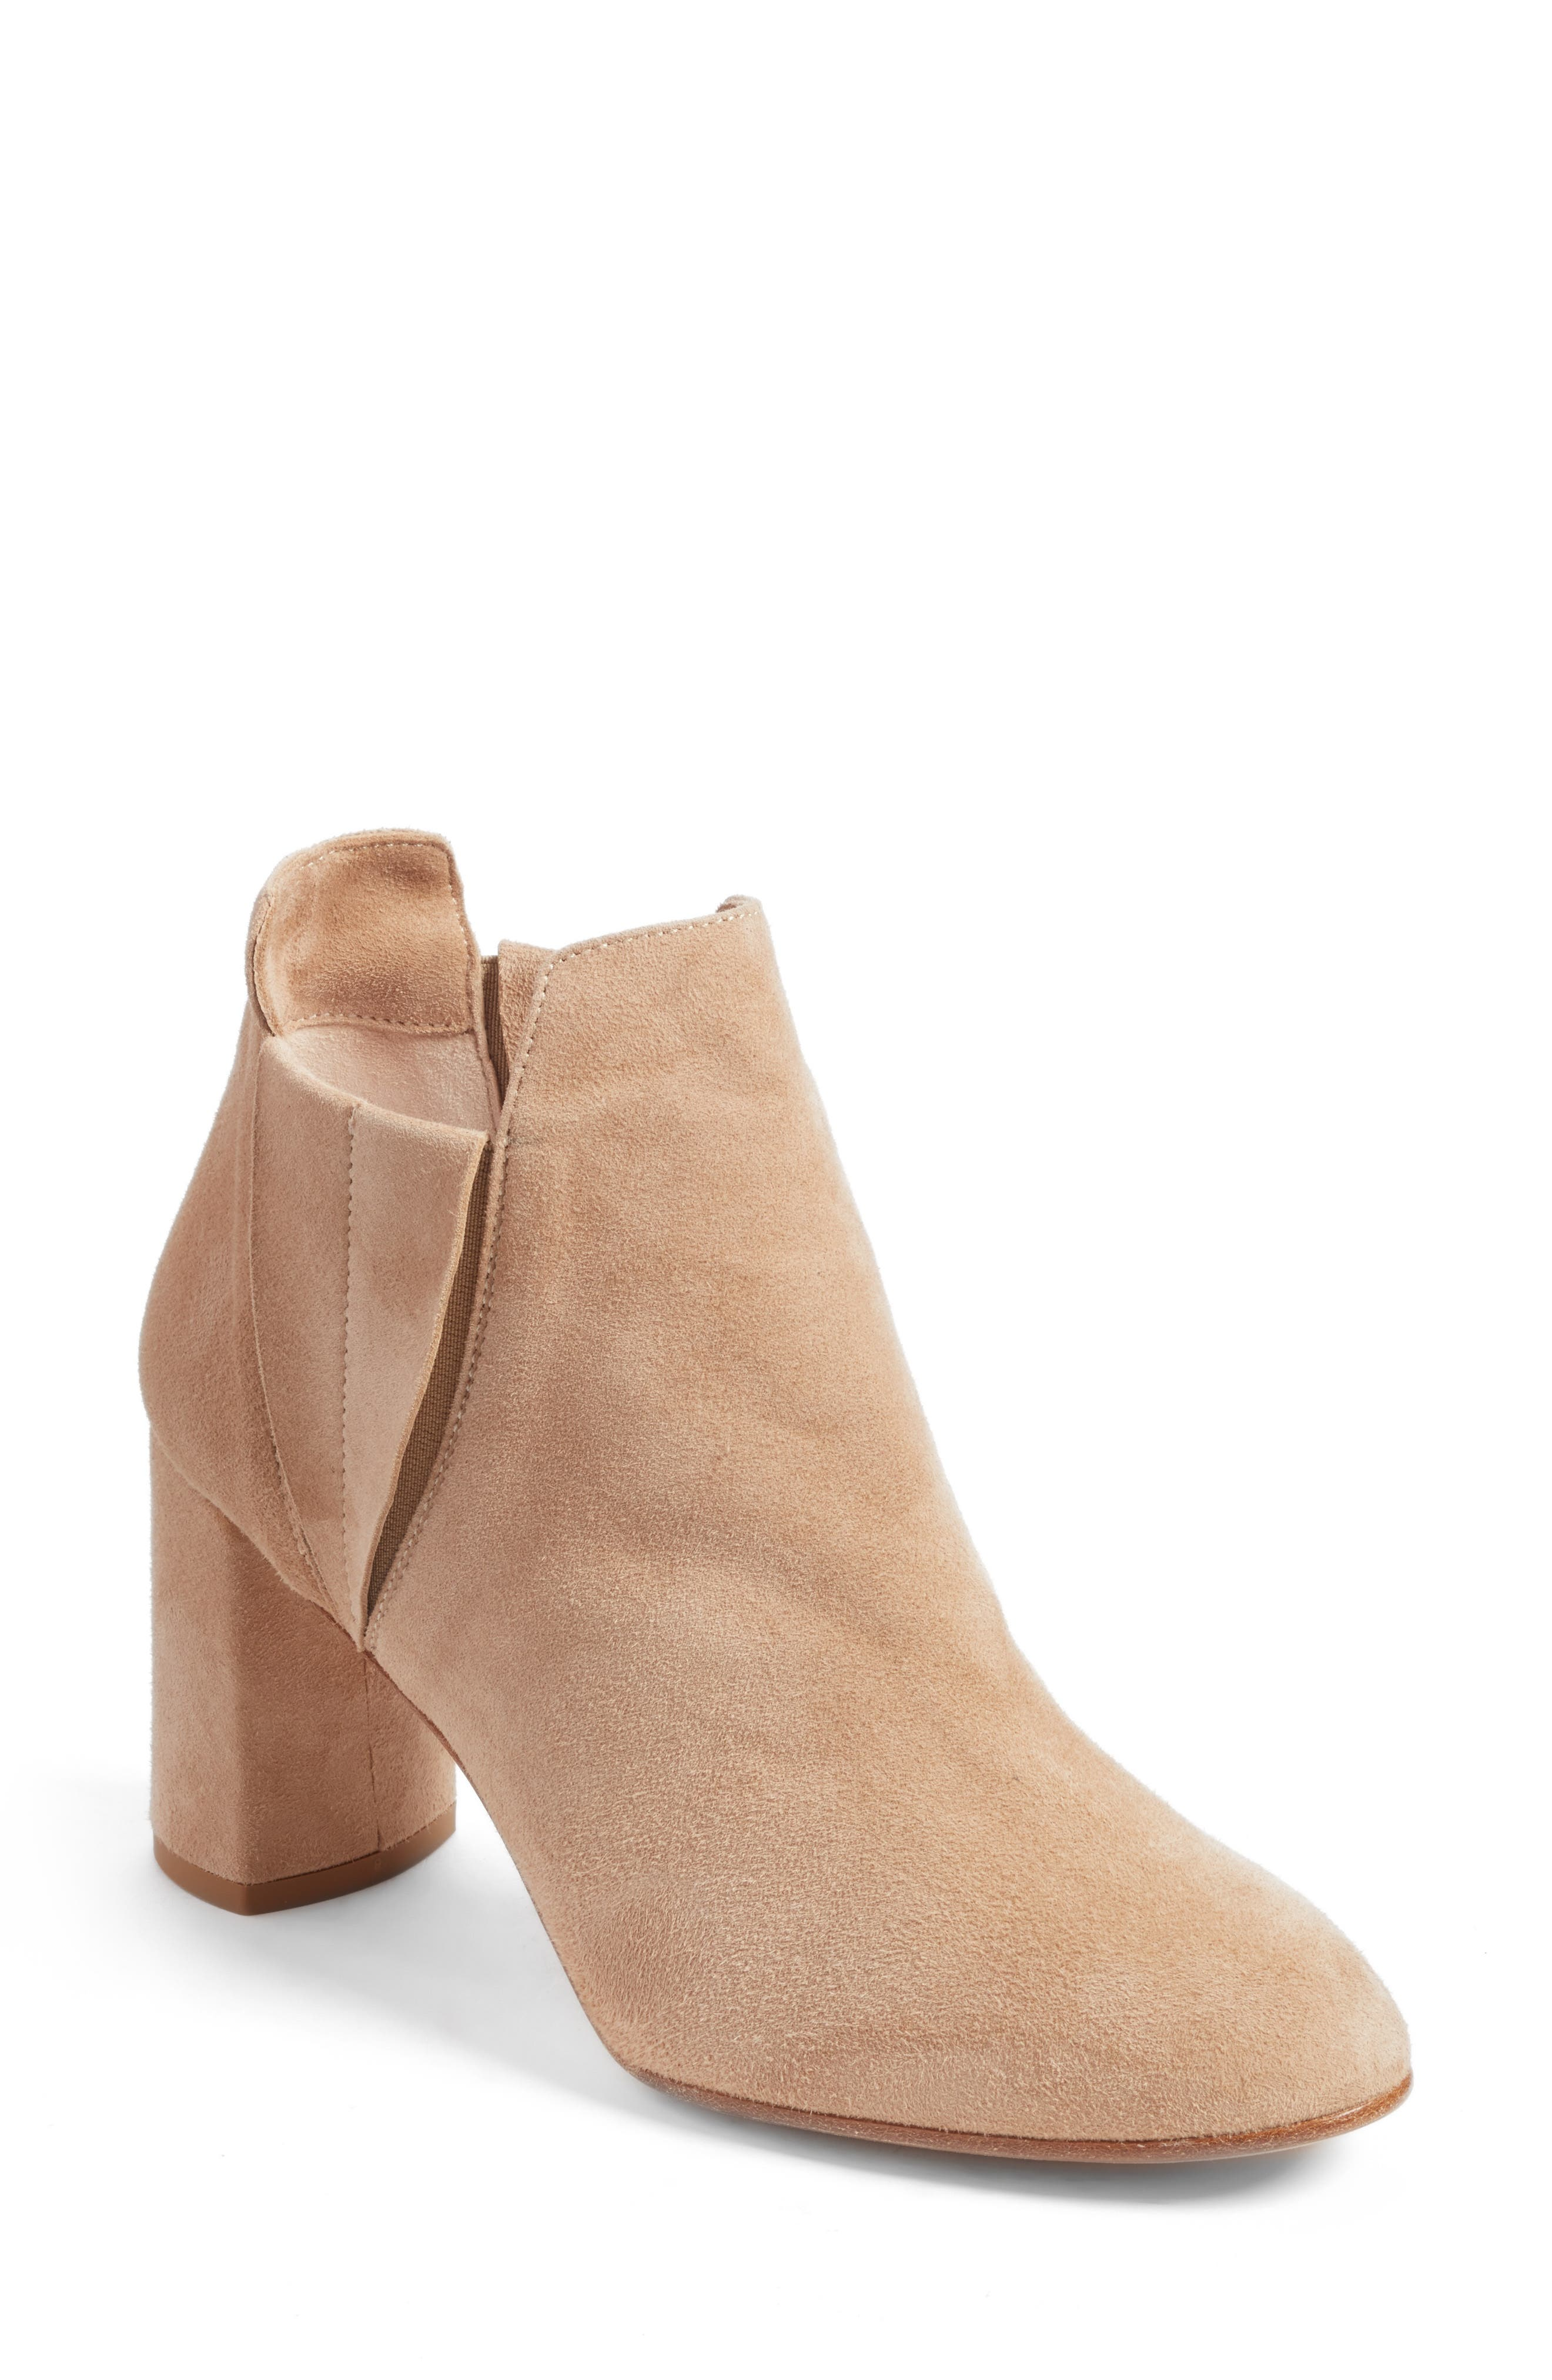 Nadina Chelsea Bootie,                             Main thumbnail 1, color,                             Travertine